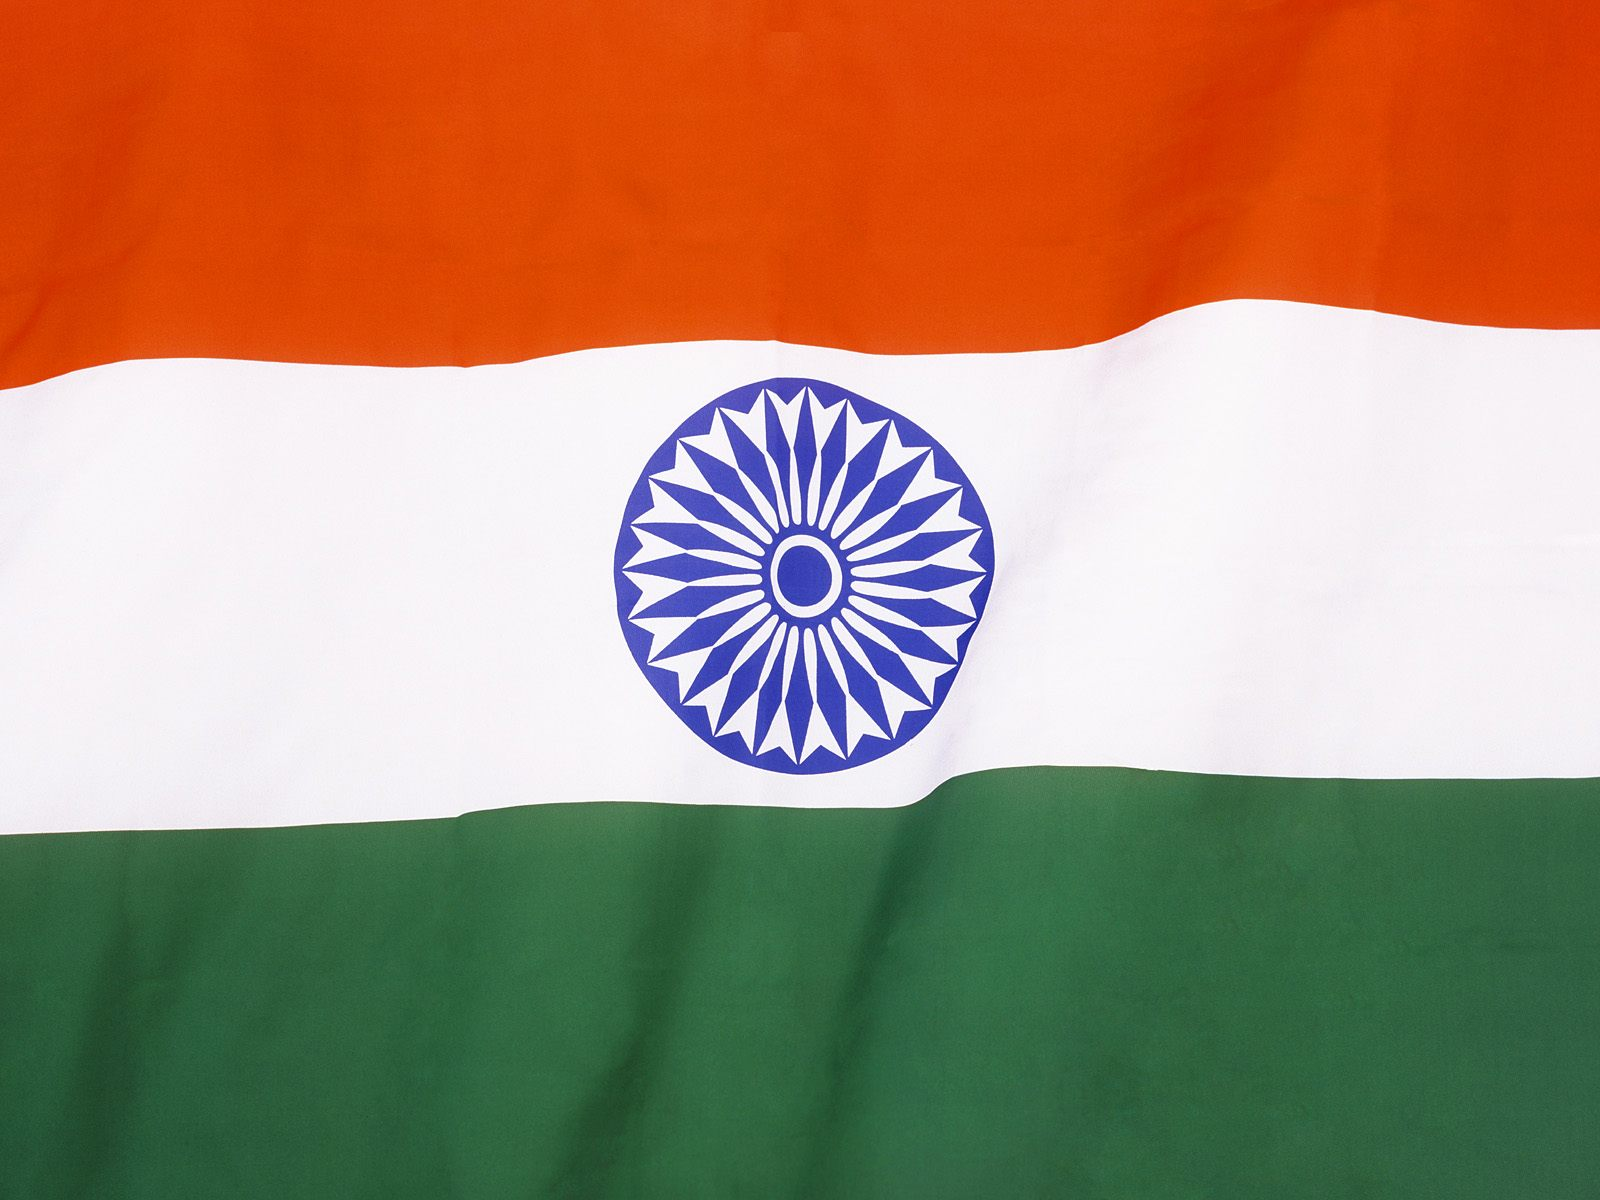 Hindi Movie Wallpapers With Quotes Stylish Indian Flag For Happy Independence Day Wishes Hd